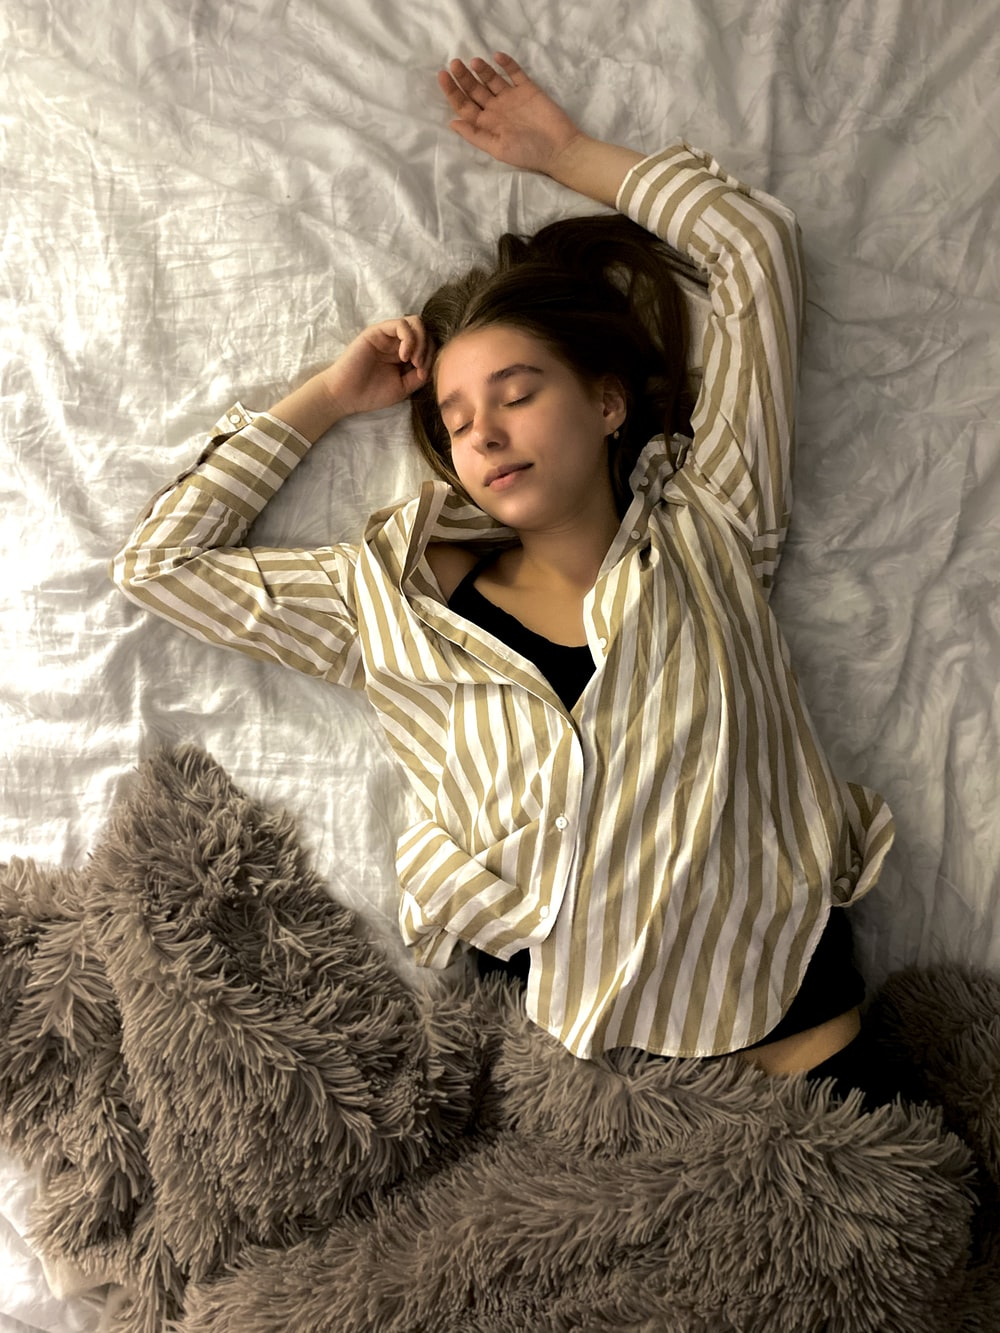 woman in white and black striped long sleeve shirt lying on bed